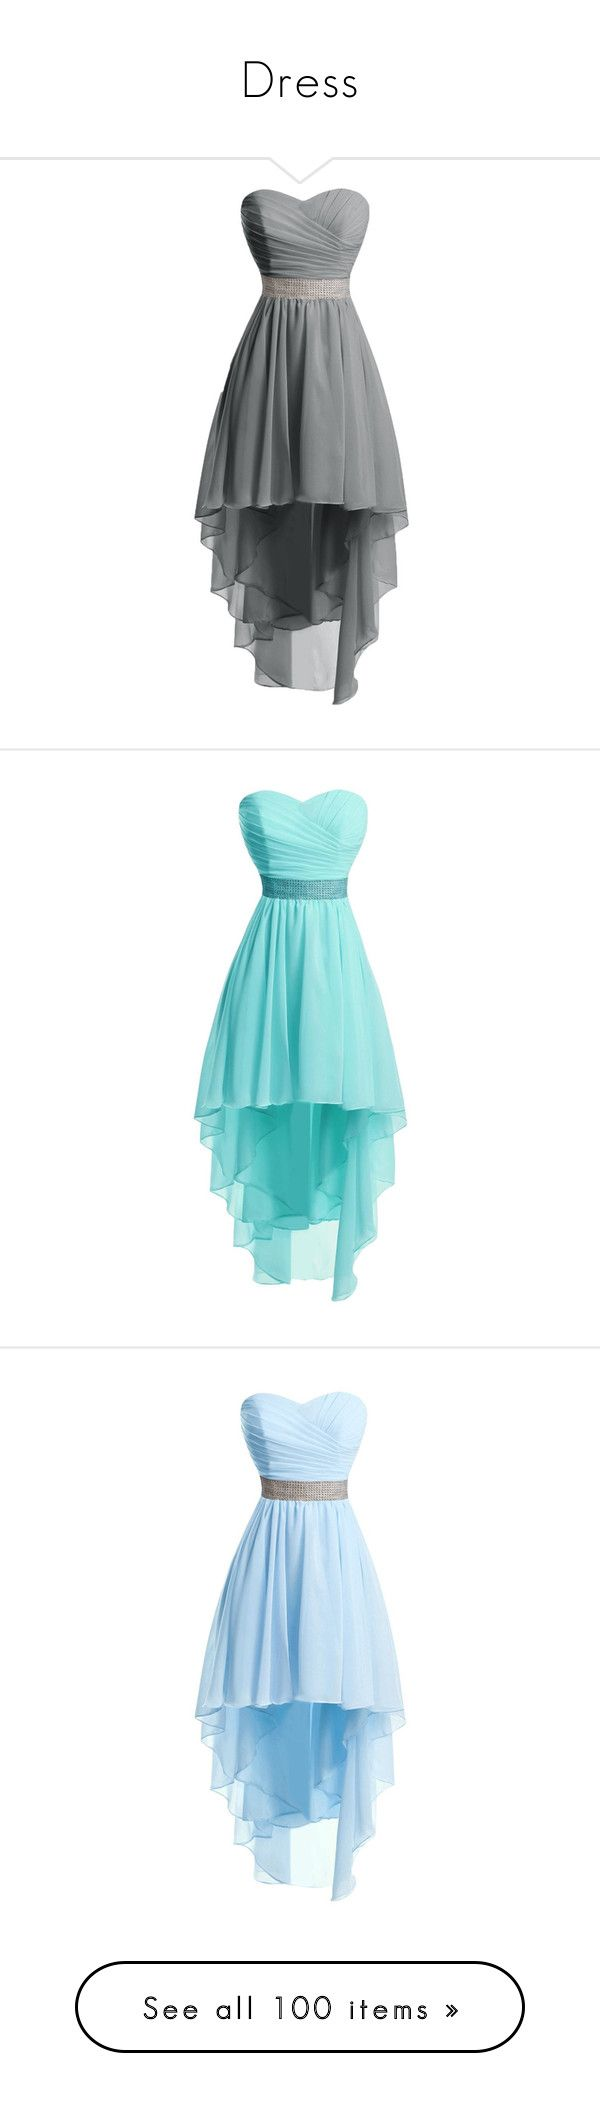 """""""Dress"""" by isaeva-nastya ❤ liked on Polyvore featuring dresses, grey, gray cocktail dress, homecoming dresses, high low dresses, hi lo dresses, hi low prom dresses, blue cocktail dresses, blue prom dresses and high low homecoming dresses"""